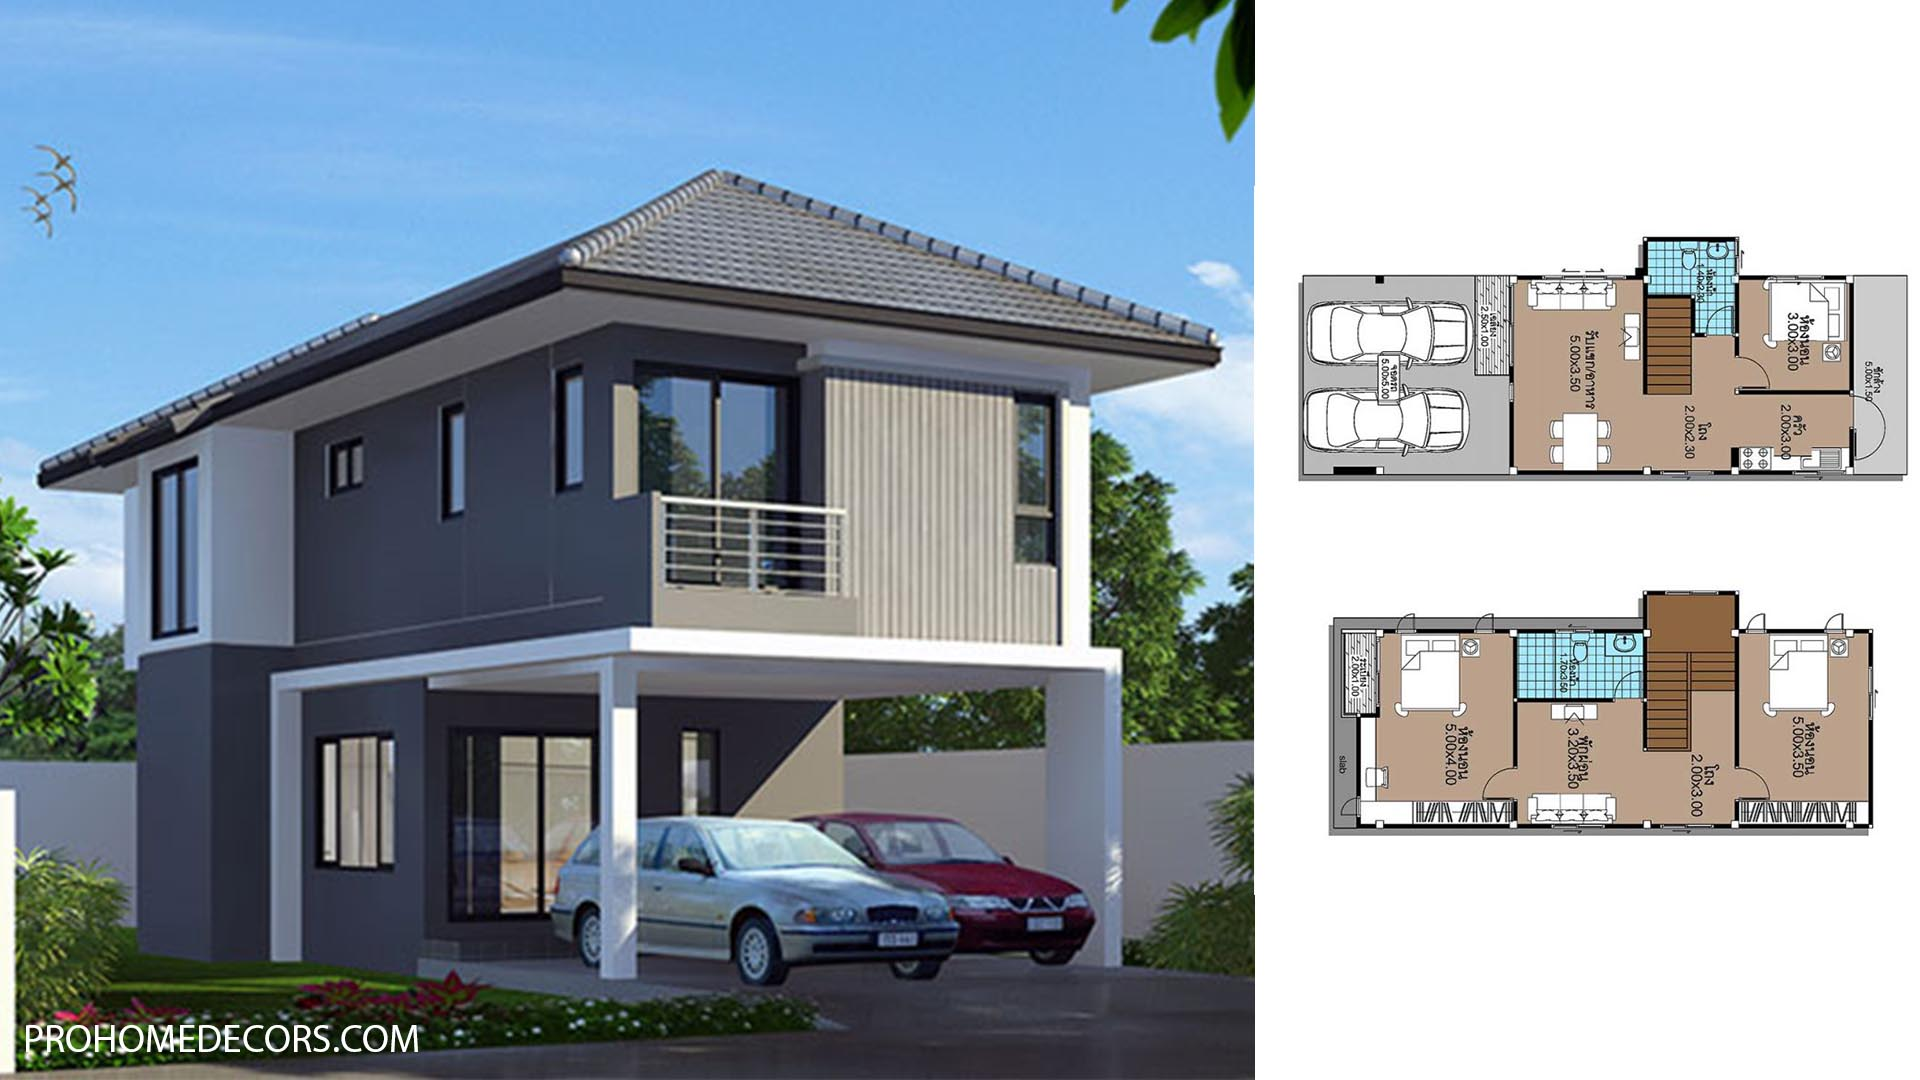 House Plans 5×12.3 with 3 Beds